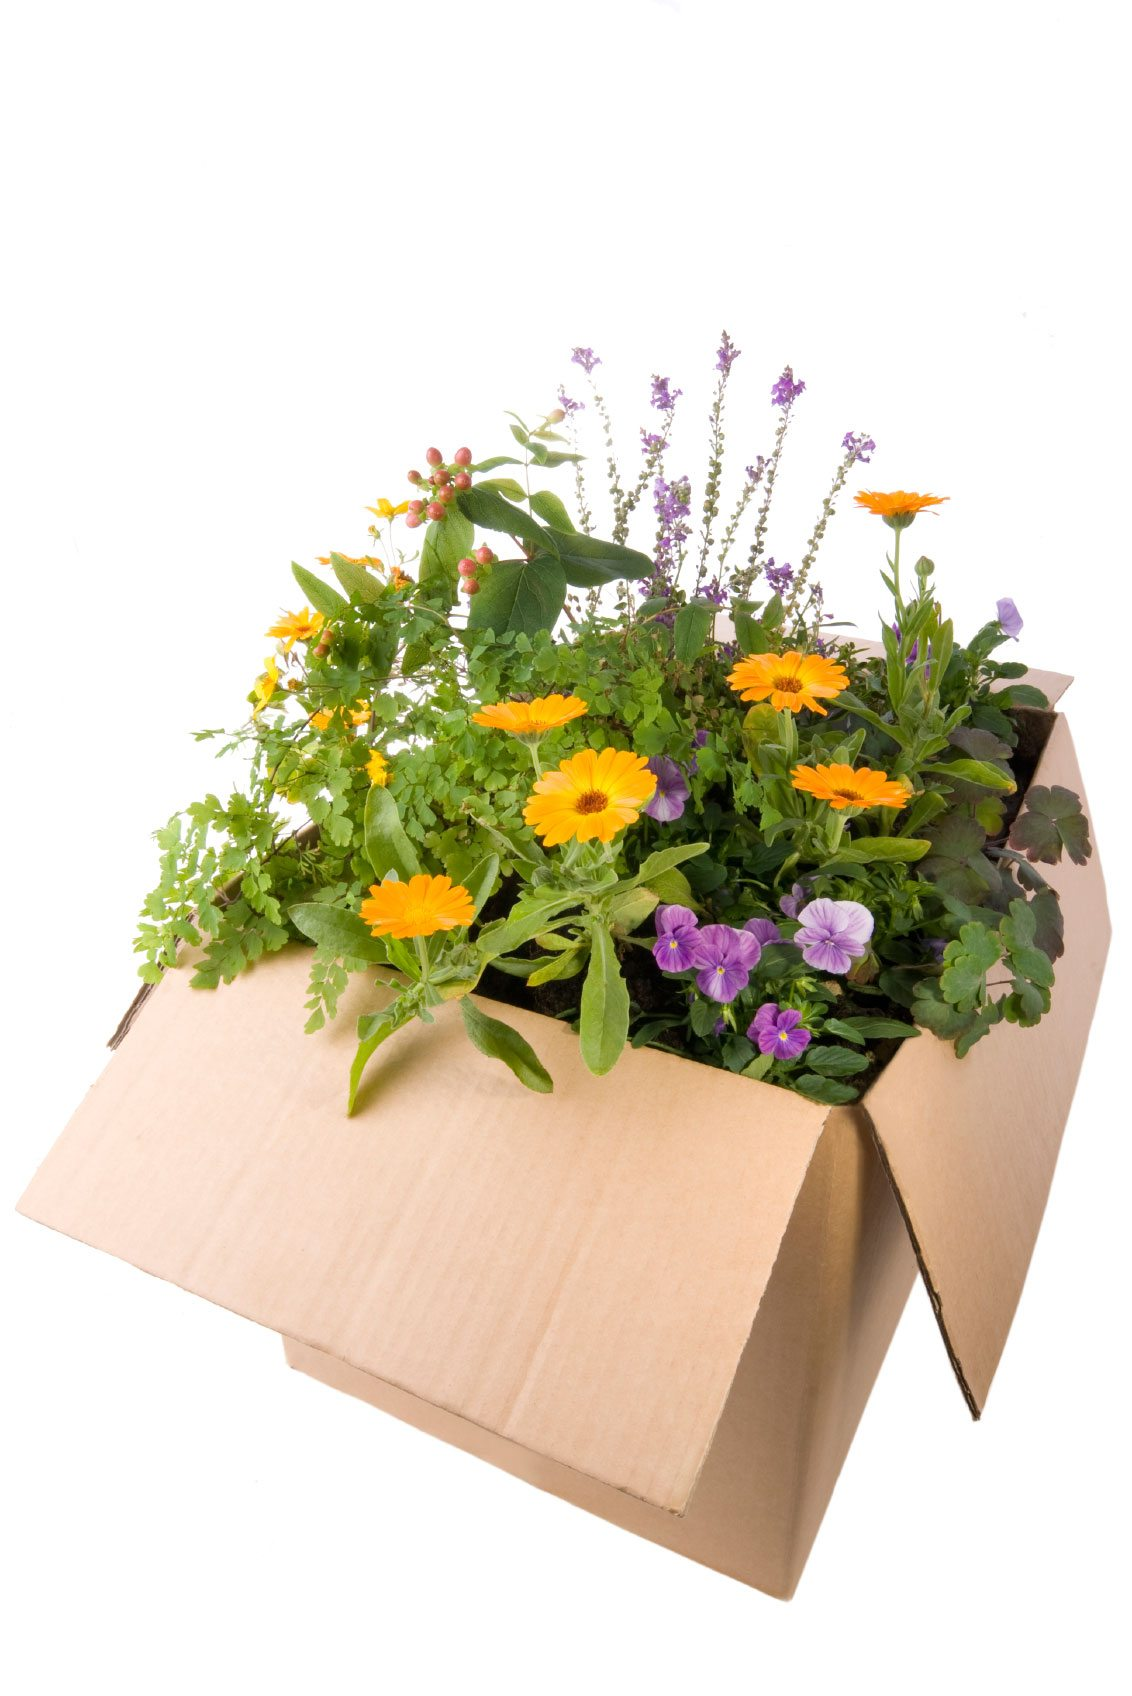 Mailing Garden Plants - Tips On Sending Plants Through Mail